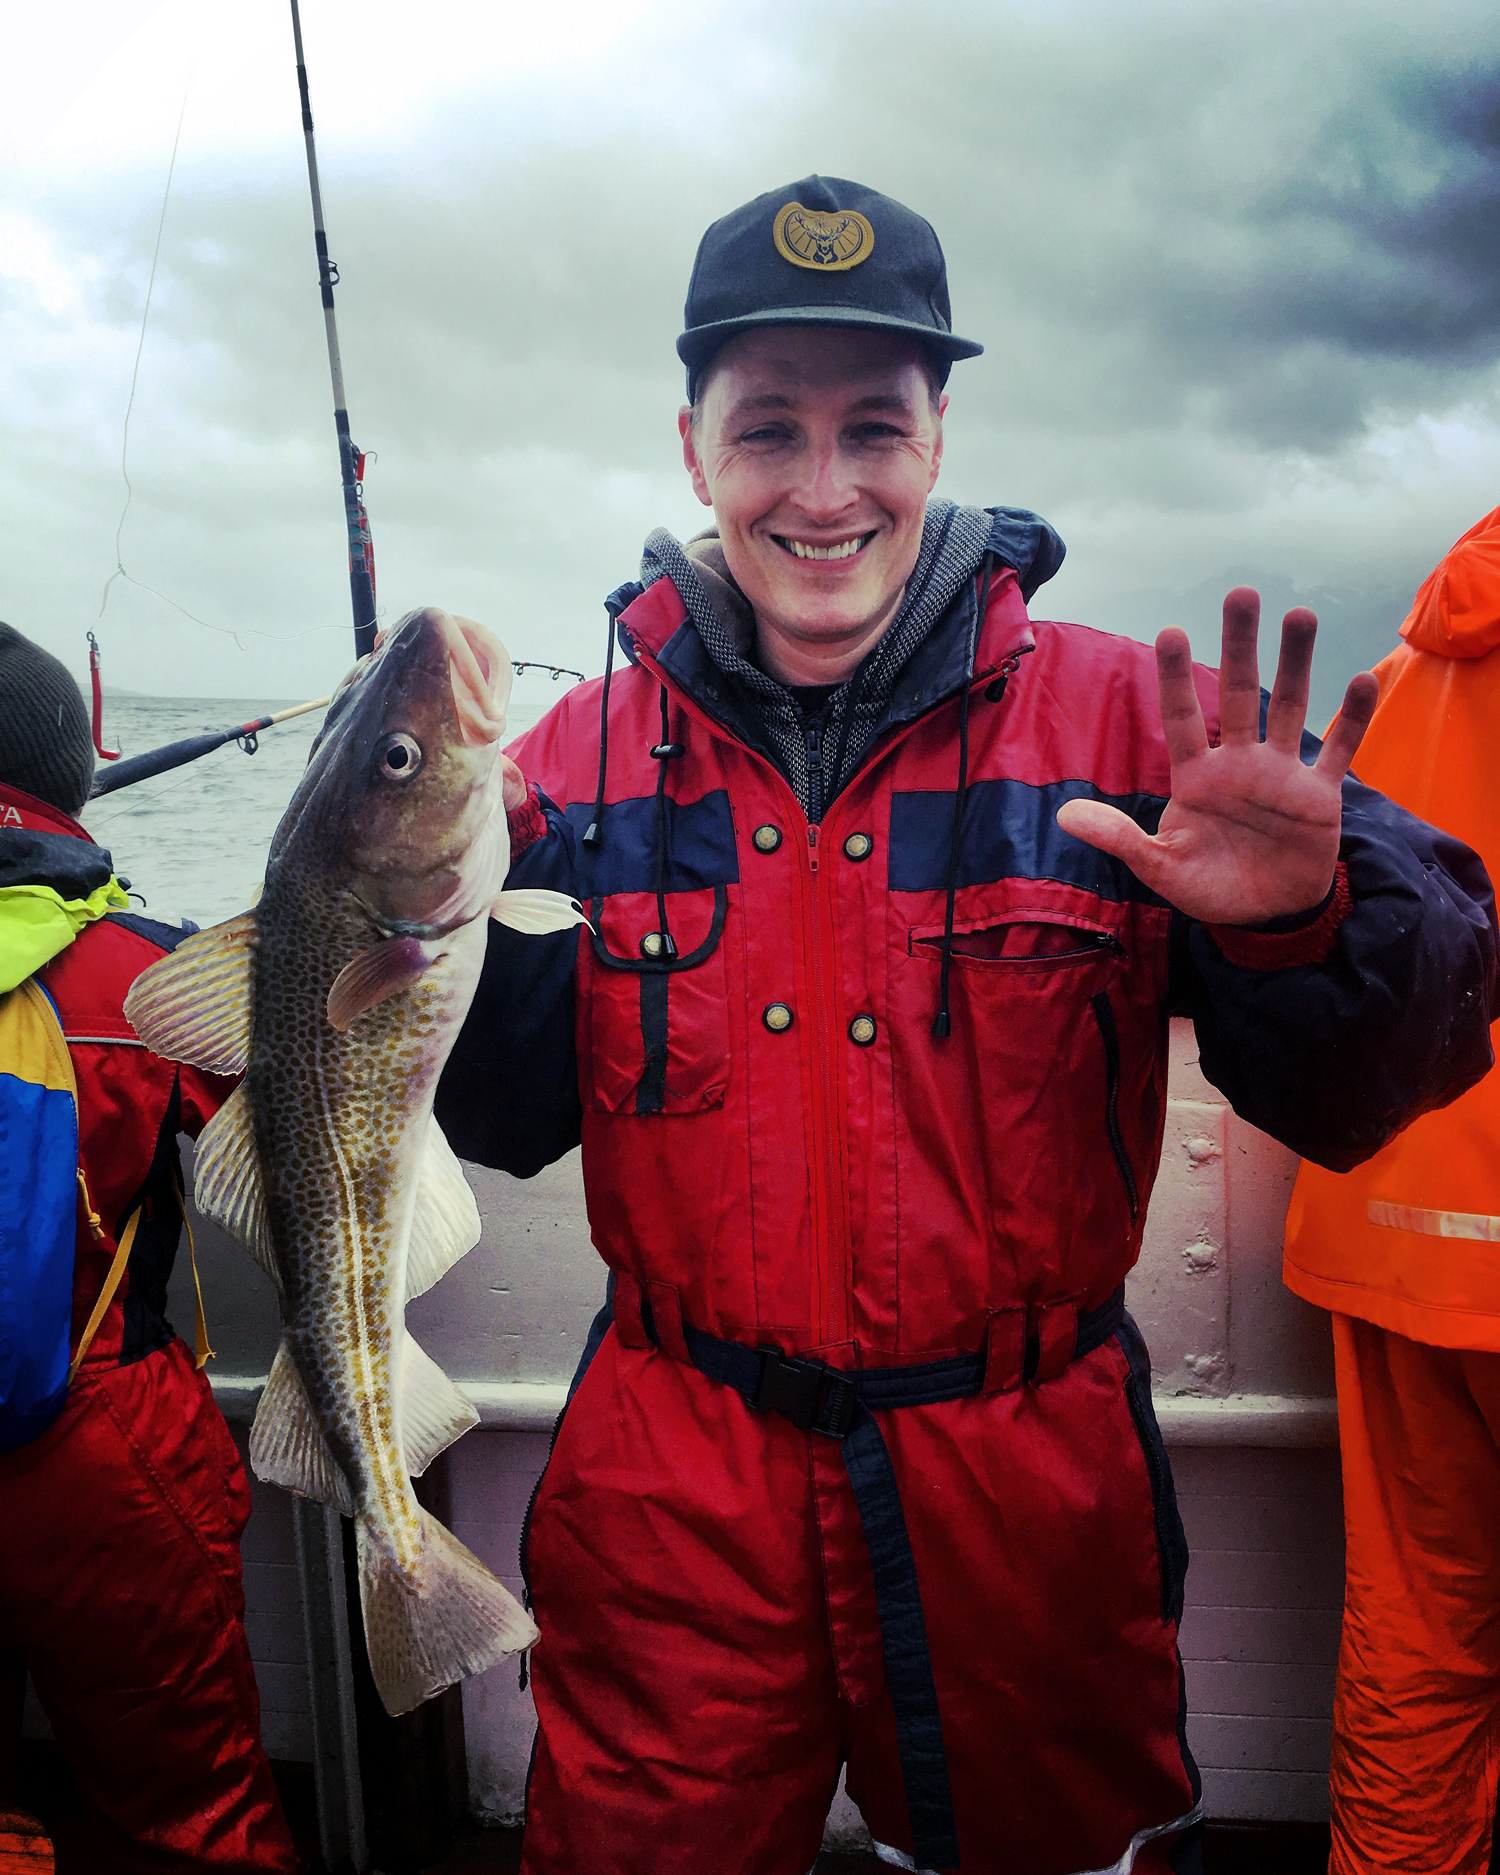 Long Days, Cod Fishing, Fermented Foods, and Other Amazing Things in Iceland